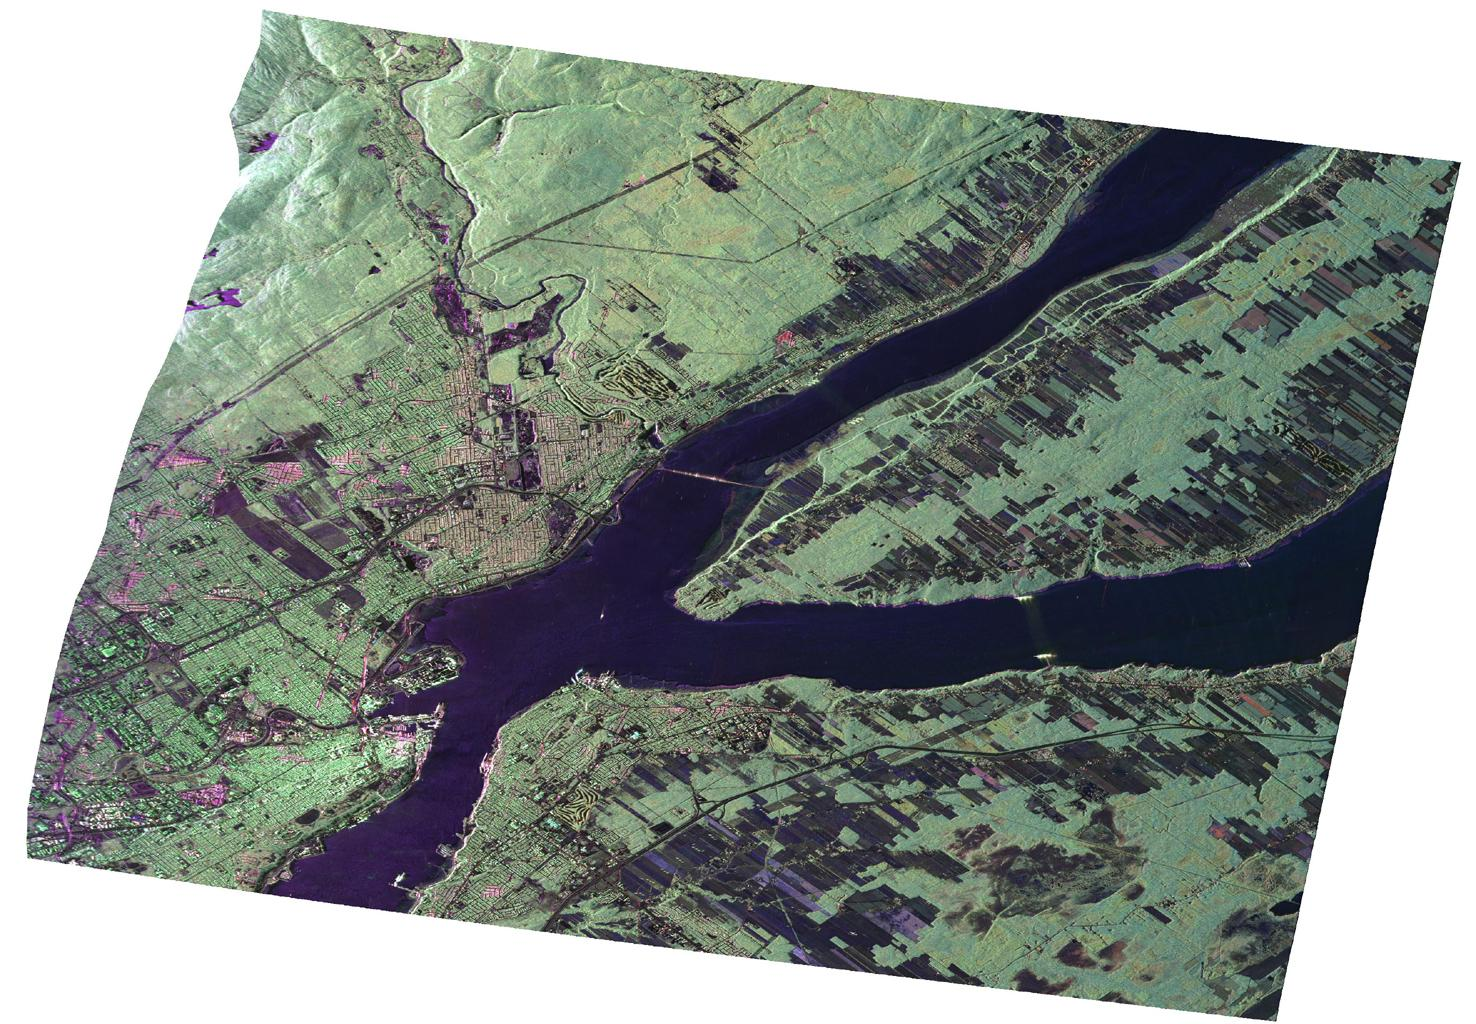 JPL's Uninhabited Aerial Vehicle Synthetic Aperture Radar collected this composite radar image around Québec City, Canada, during an 11-day campaign to study the structure of temperate and boreal forests.